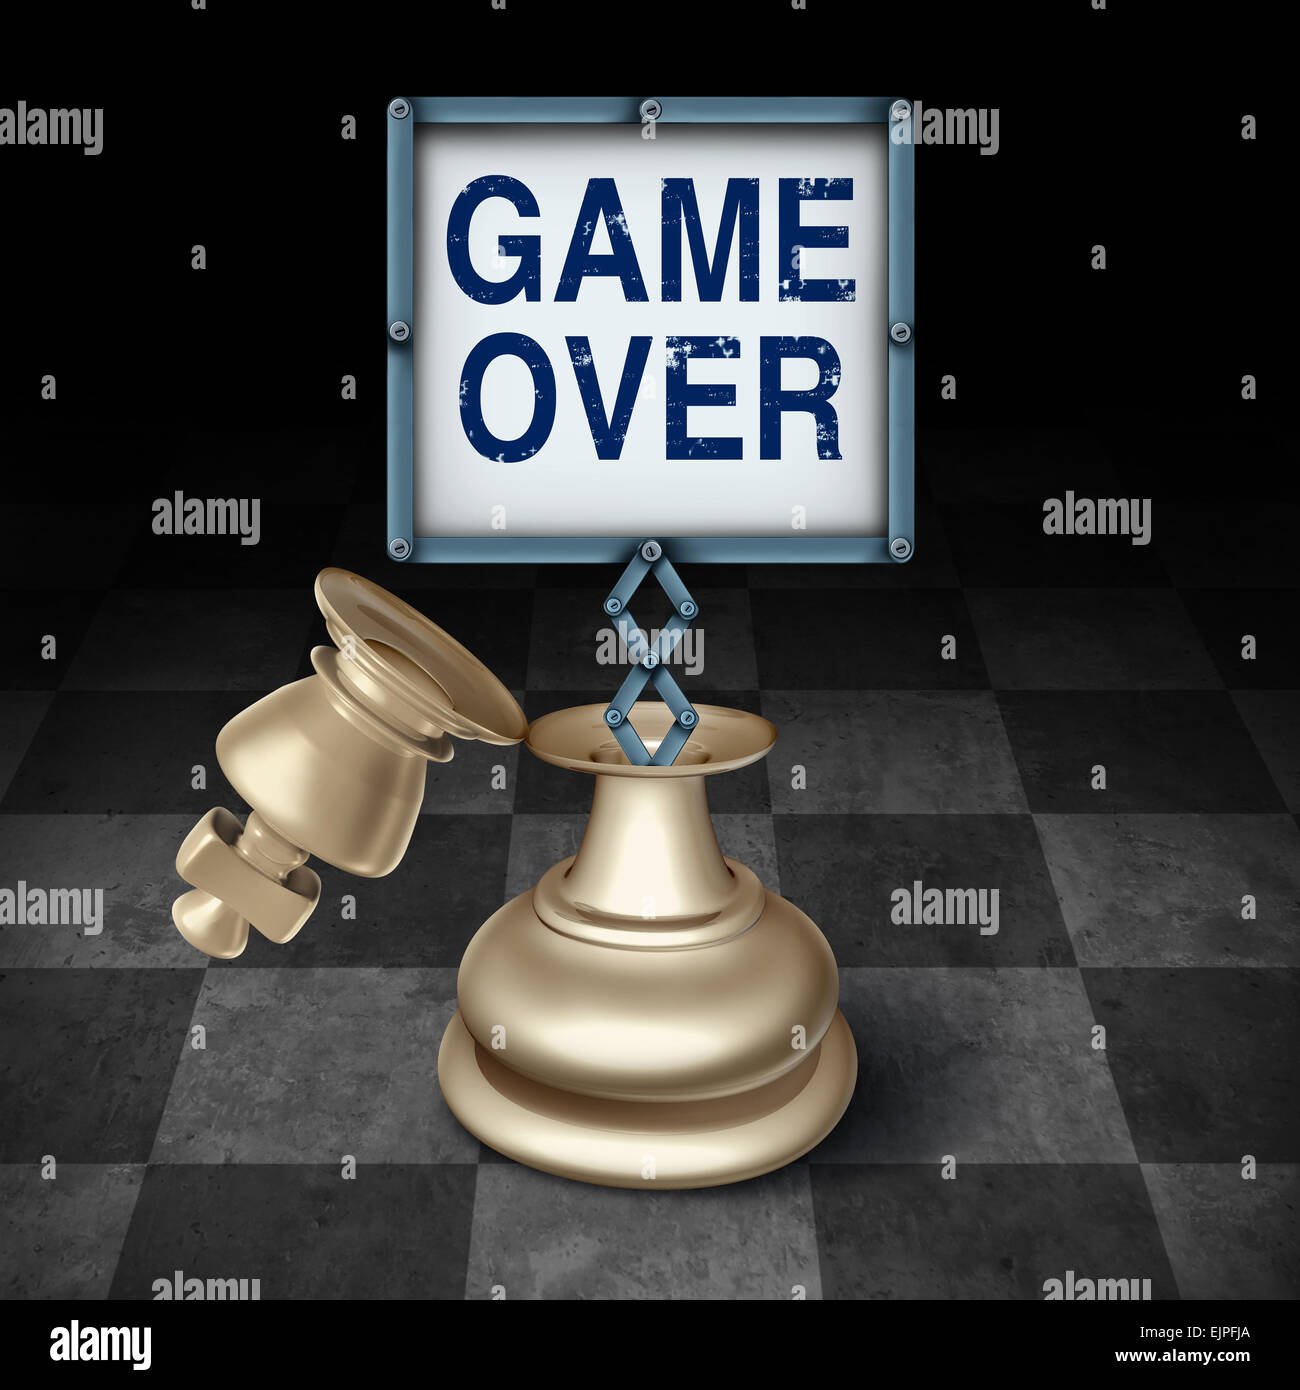 Game over business concept as an open king chess piece on a checkered board with a sign emerging with words representing - Stock Image